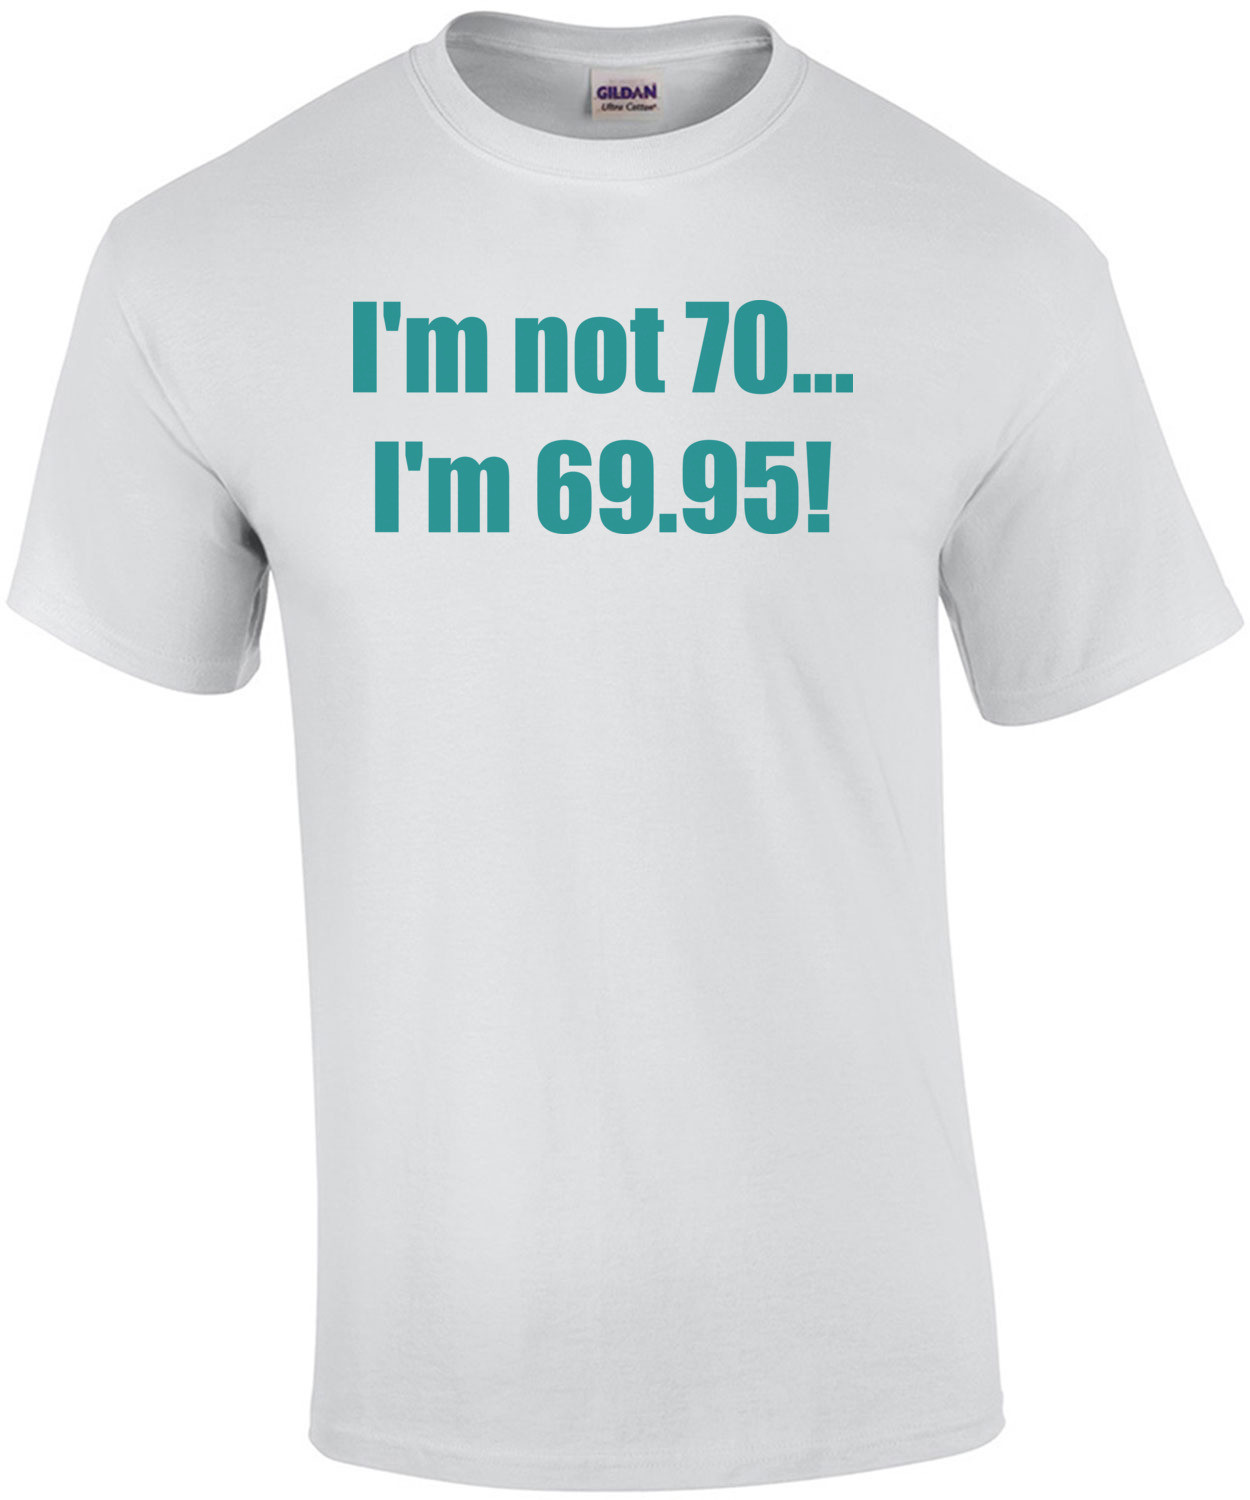 I'm not 70... I'm 69.95! 70th birthday Shirt